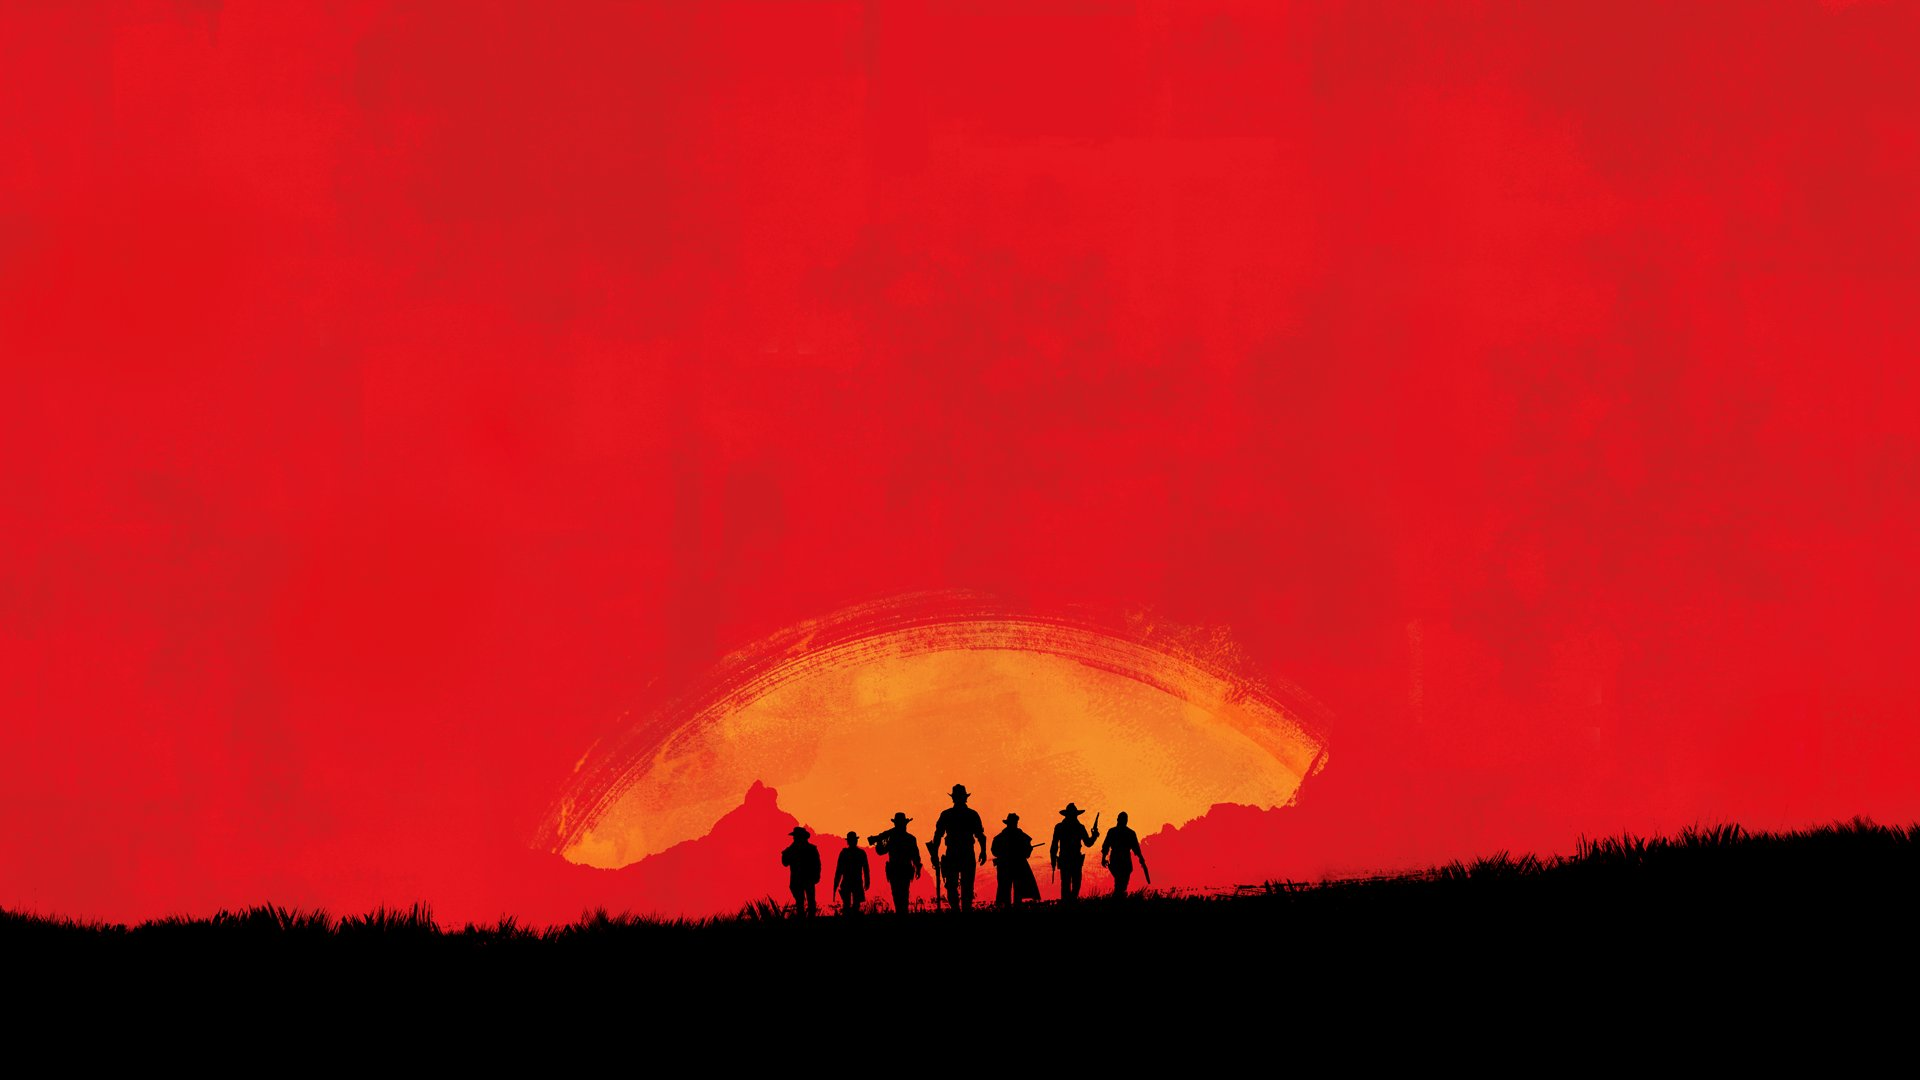 Red Dead Redemption 2 Tease?